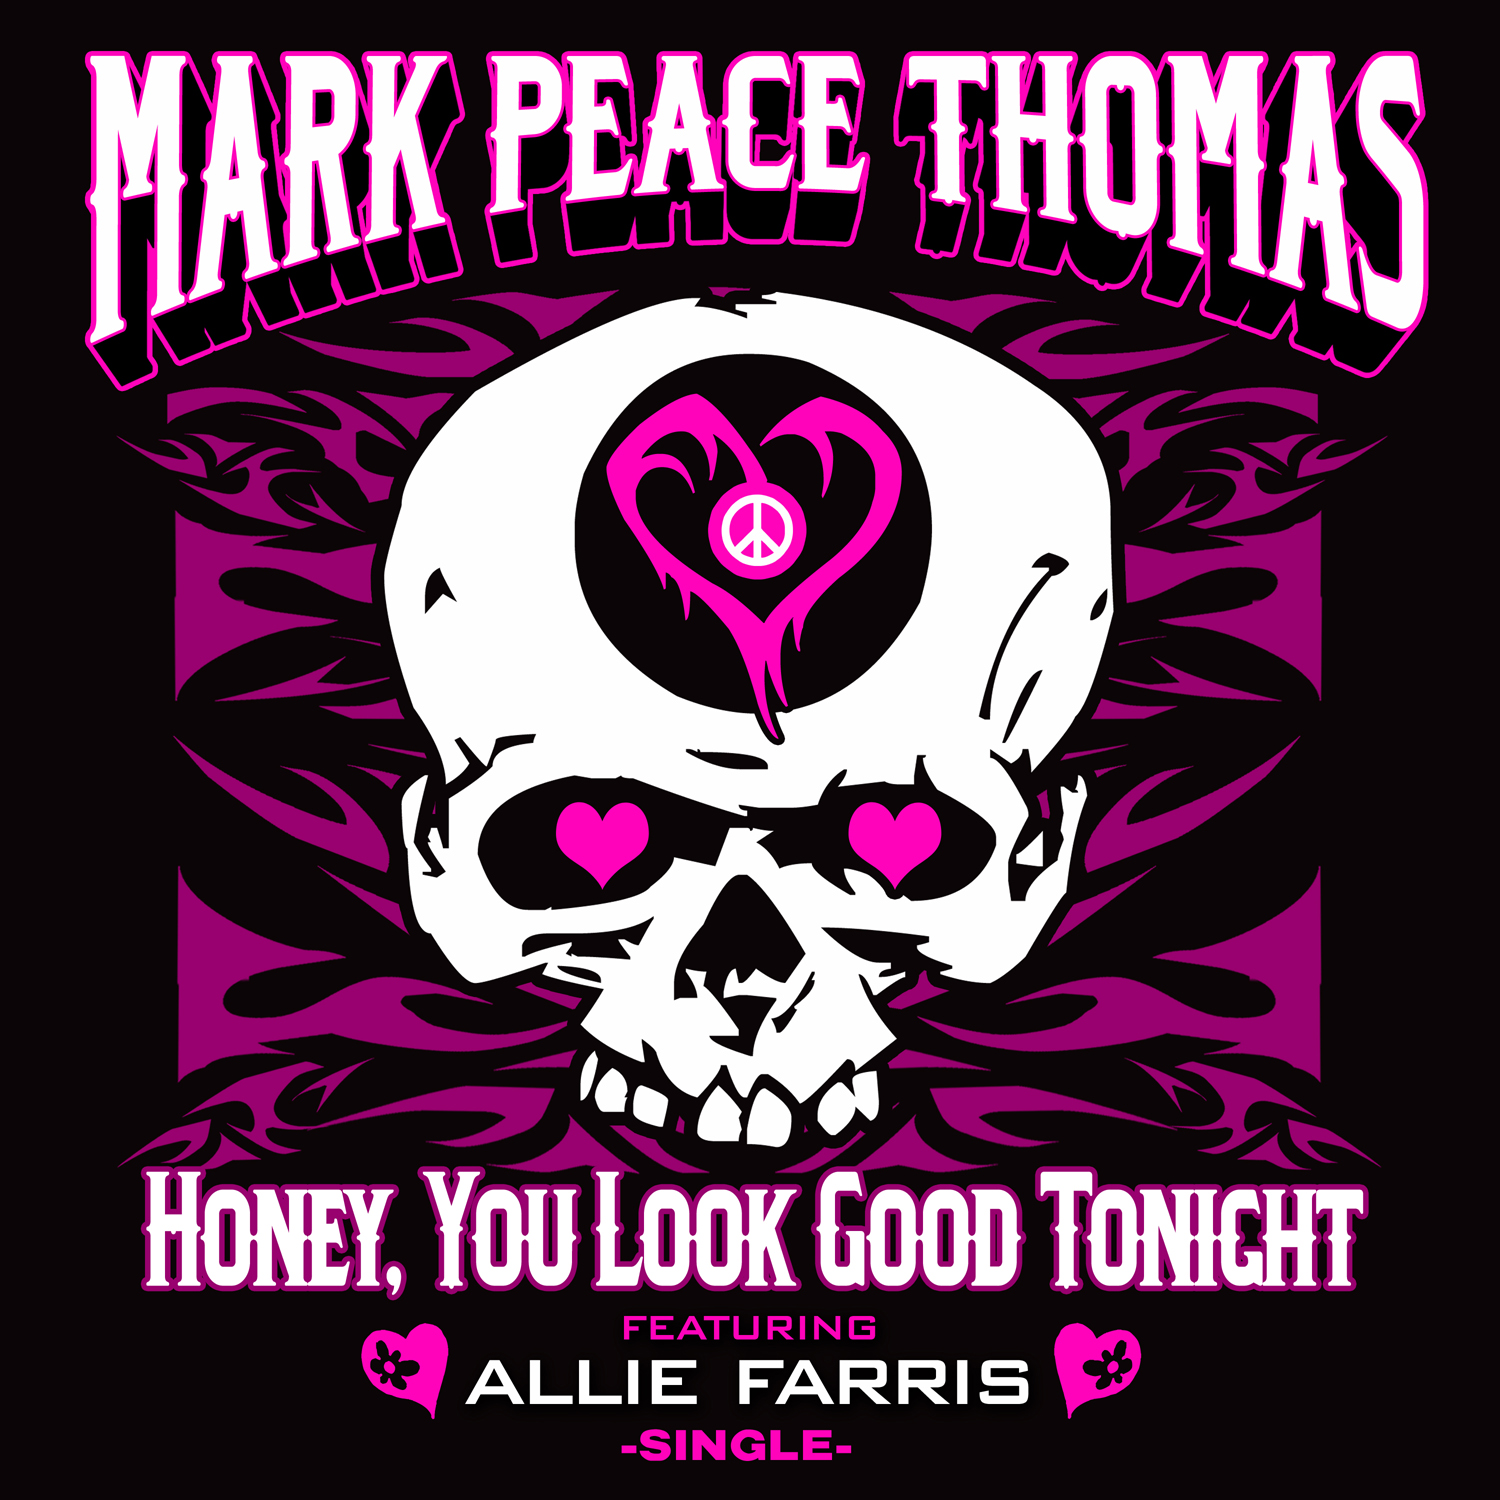 """Mark Peace Thomas Offers Up """"Hard Rock Candy"""" This Valentine's Day with Singer Allie Farris by Saying Goodbye to Boring Love Songs"""